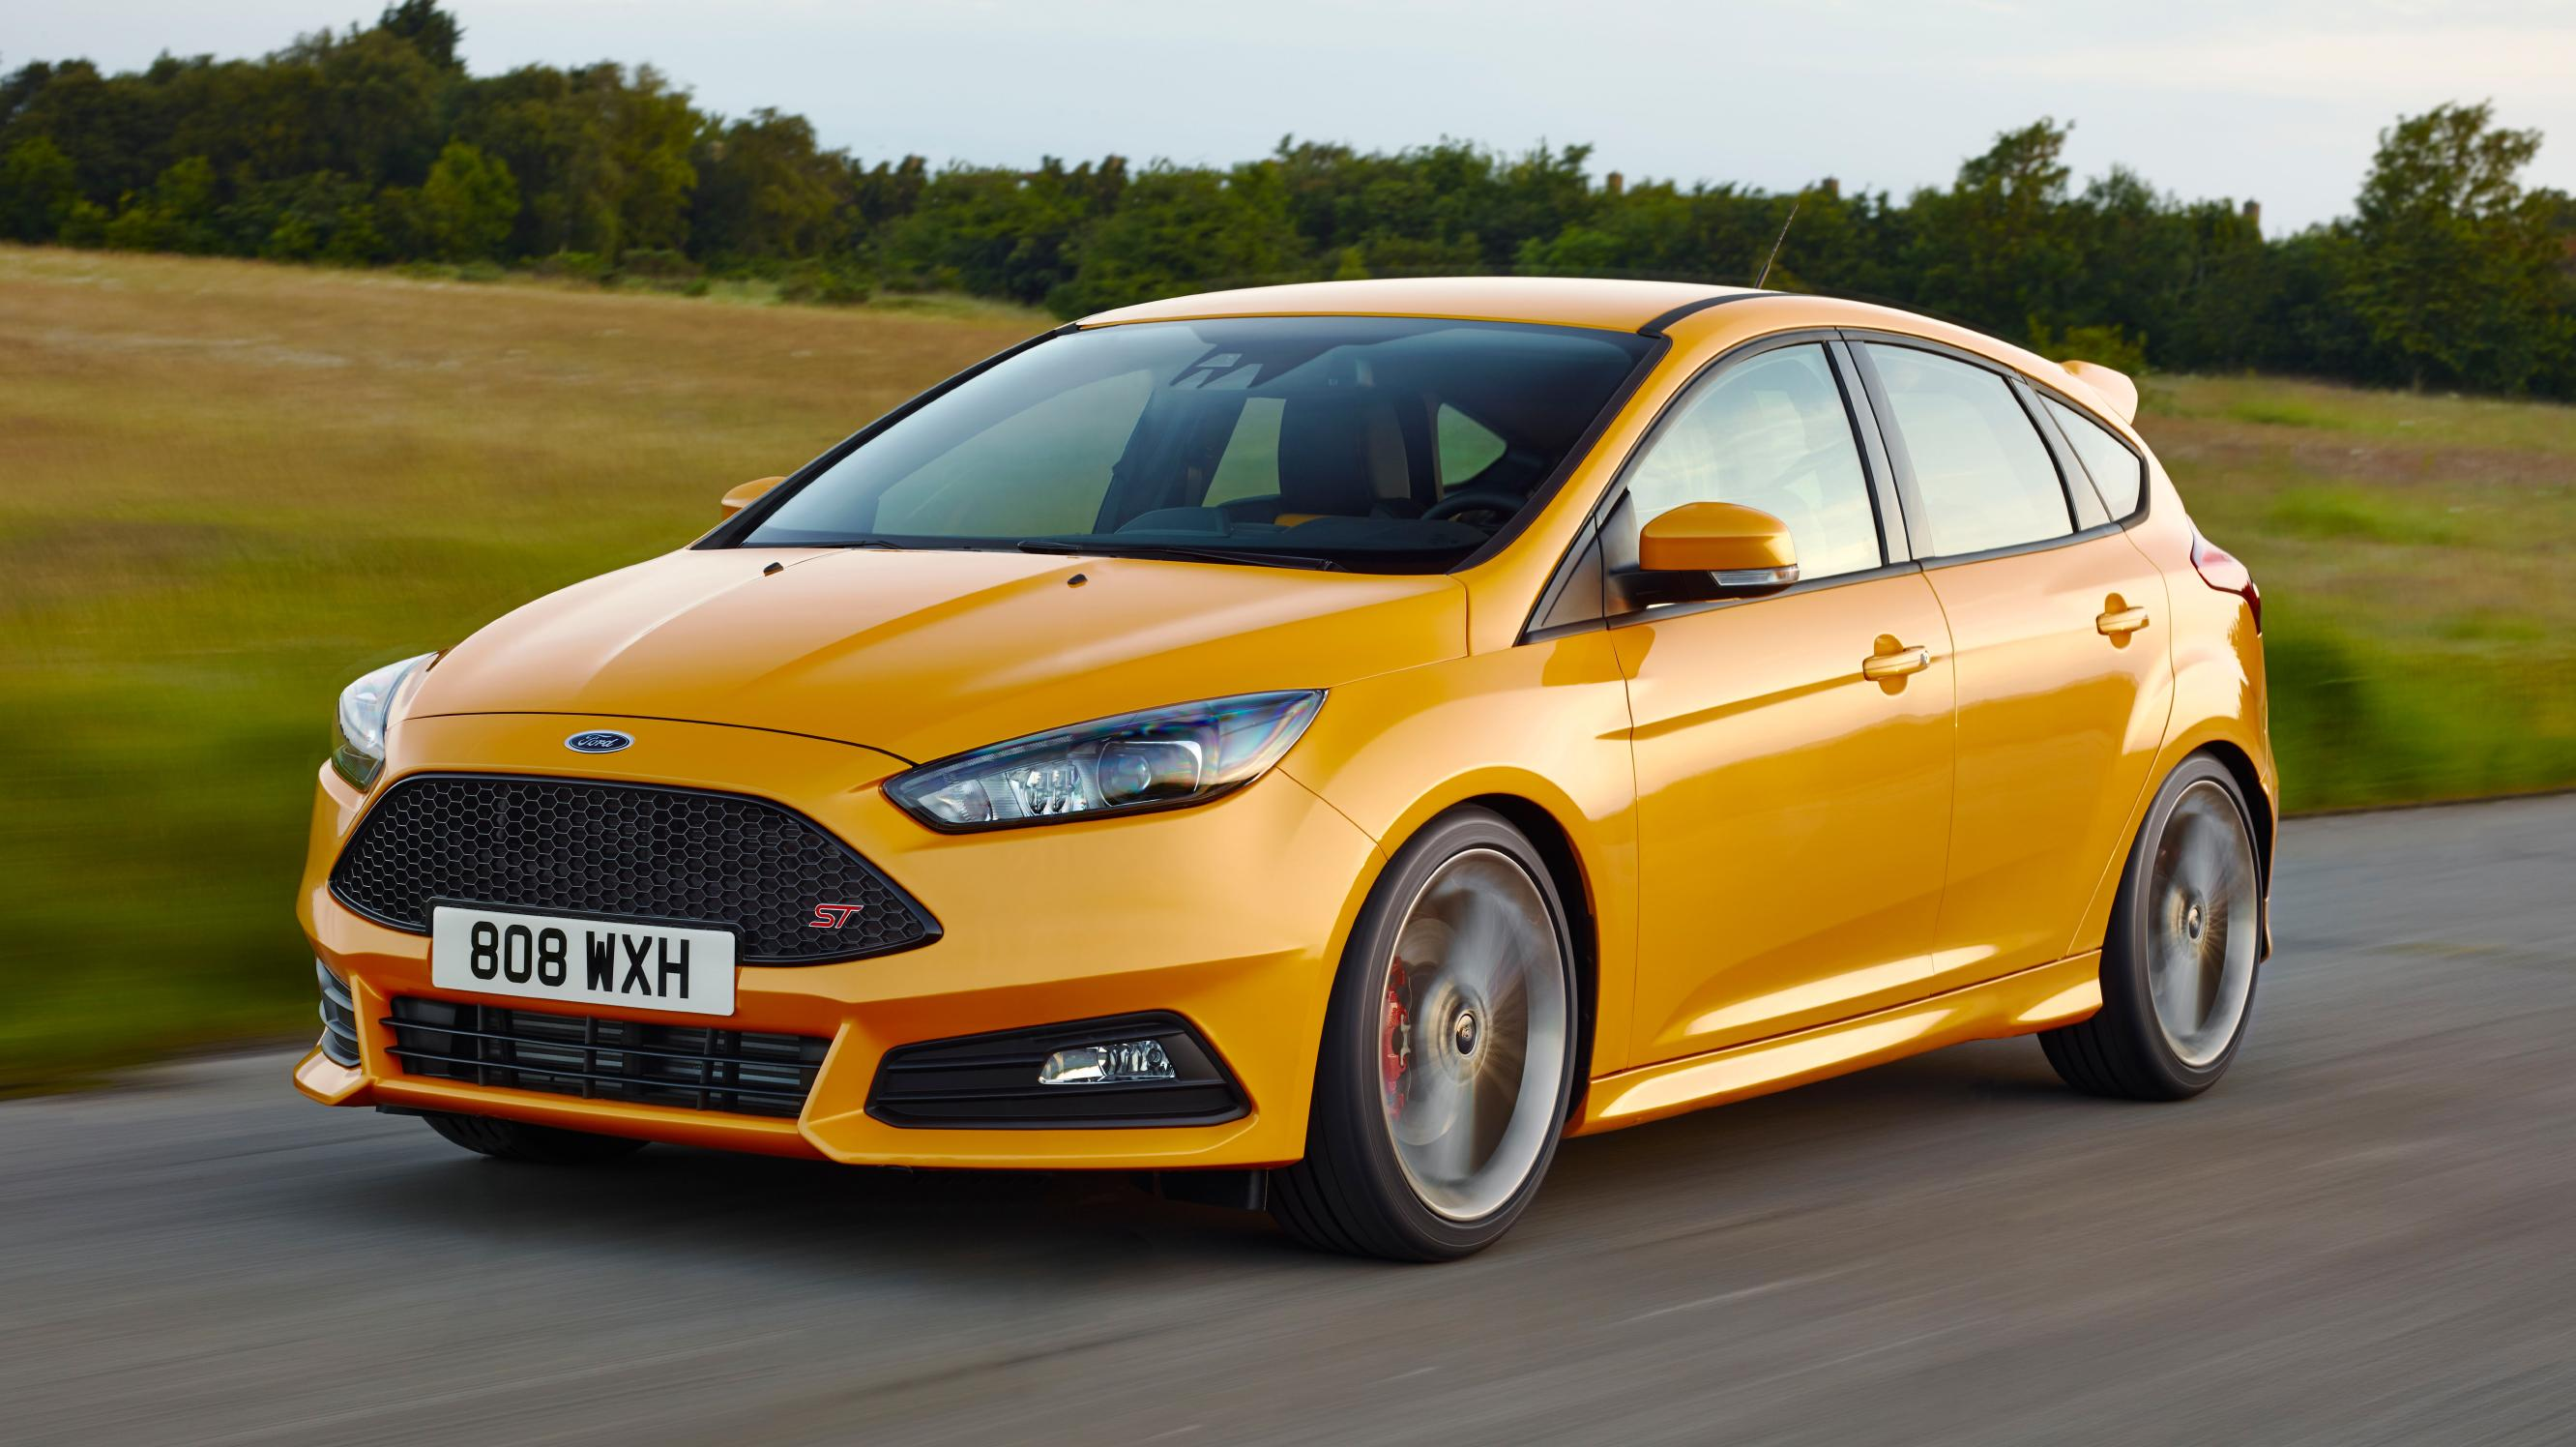 Ford Focus ST yellow front